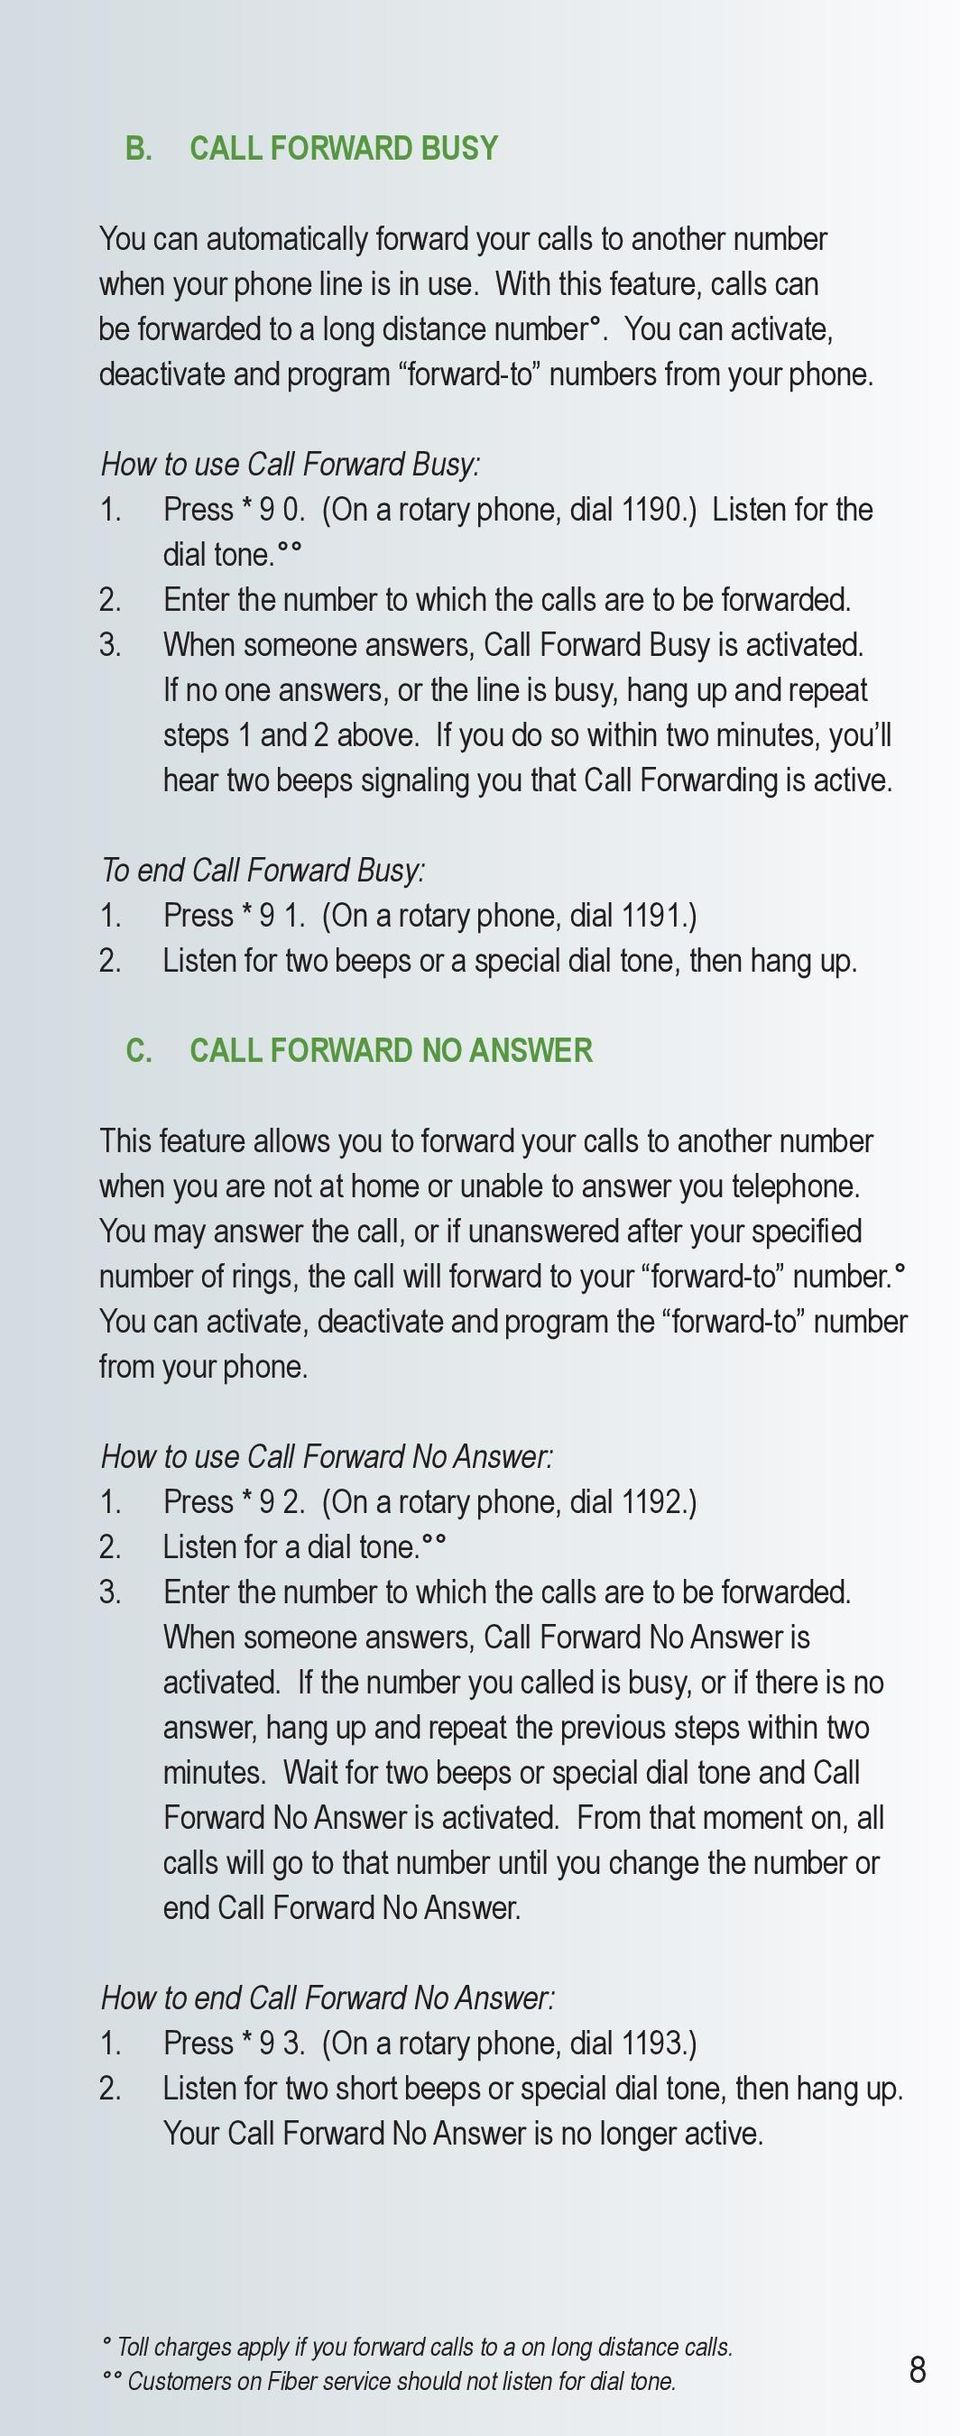 Enter the number to which the calls are to be forwarded. 3. When someone answers, Call Forward Busy is activated. If no one answers, or the line is busy, hang up and repeat steps 1 and 2 above.